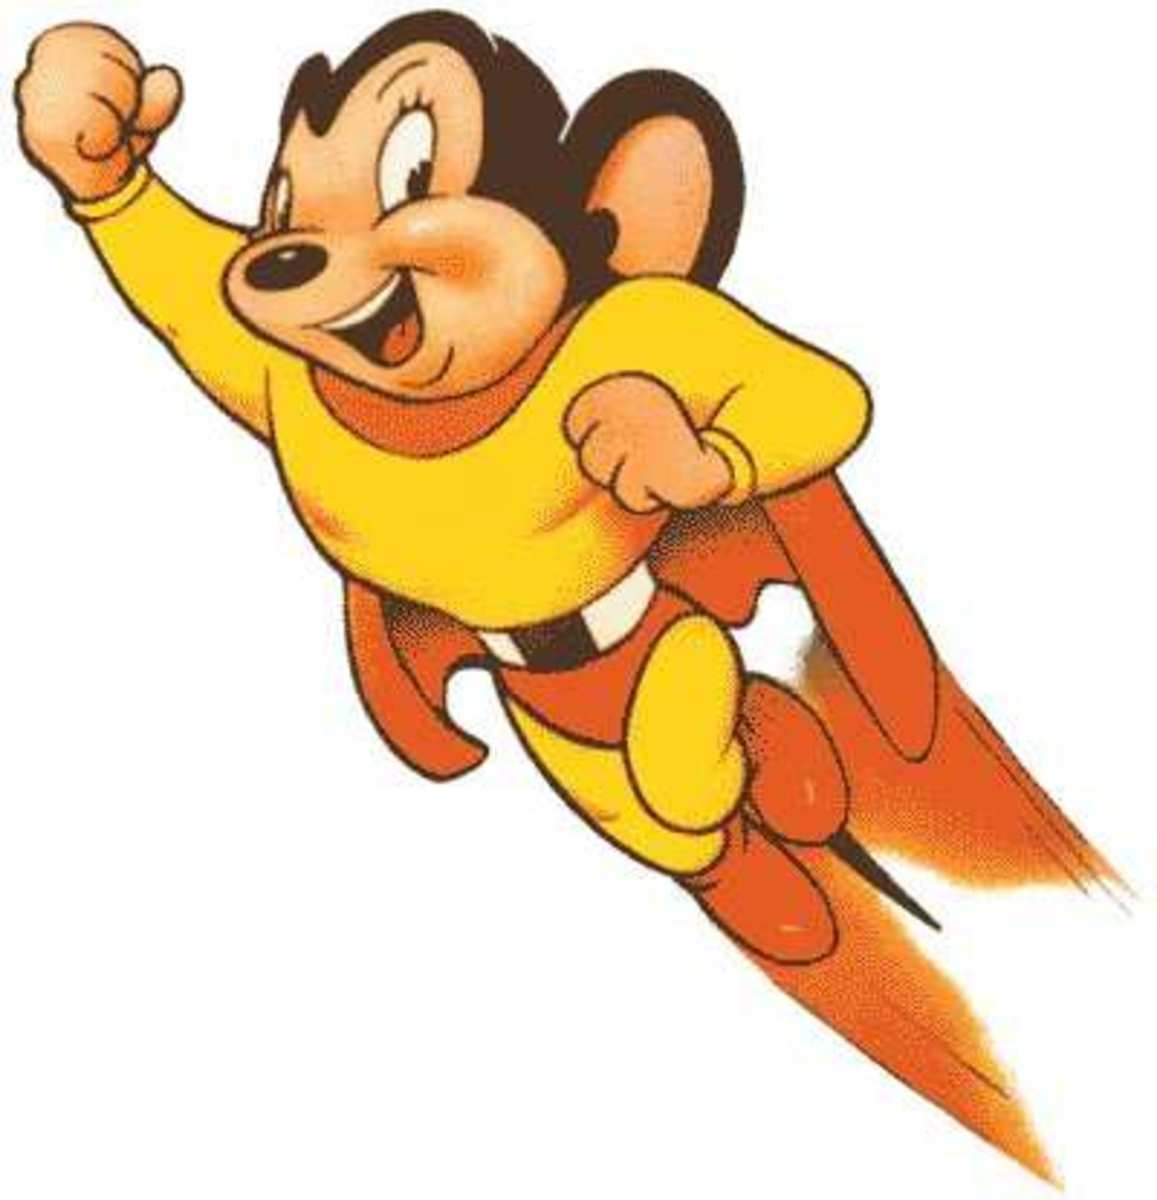 Mighty Mouse: Here I Come To Save The Day!